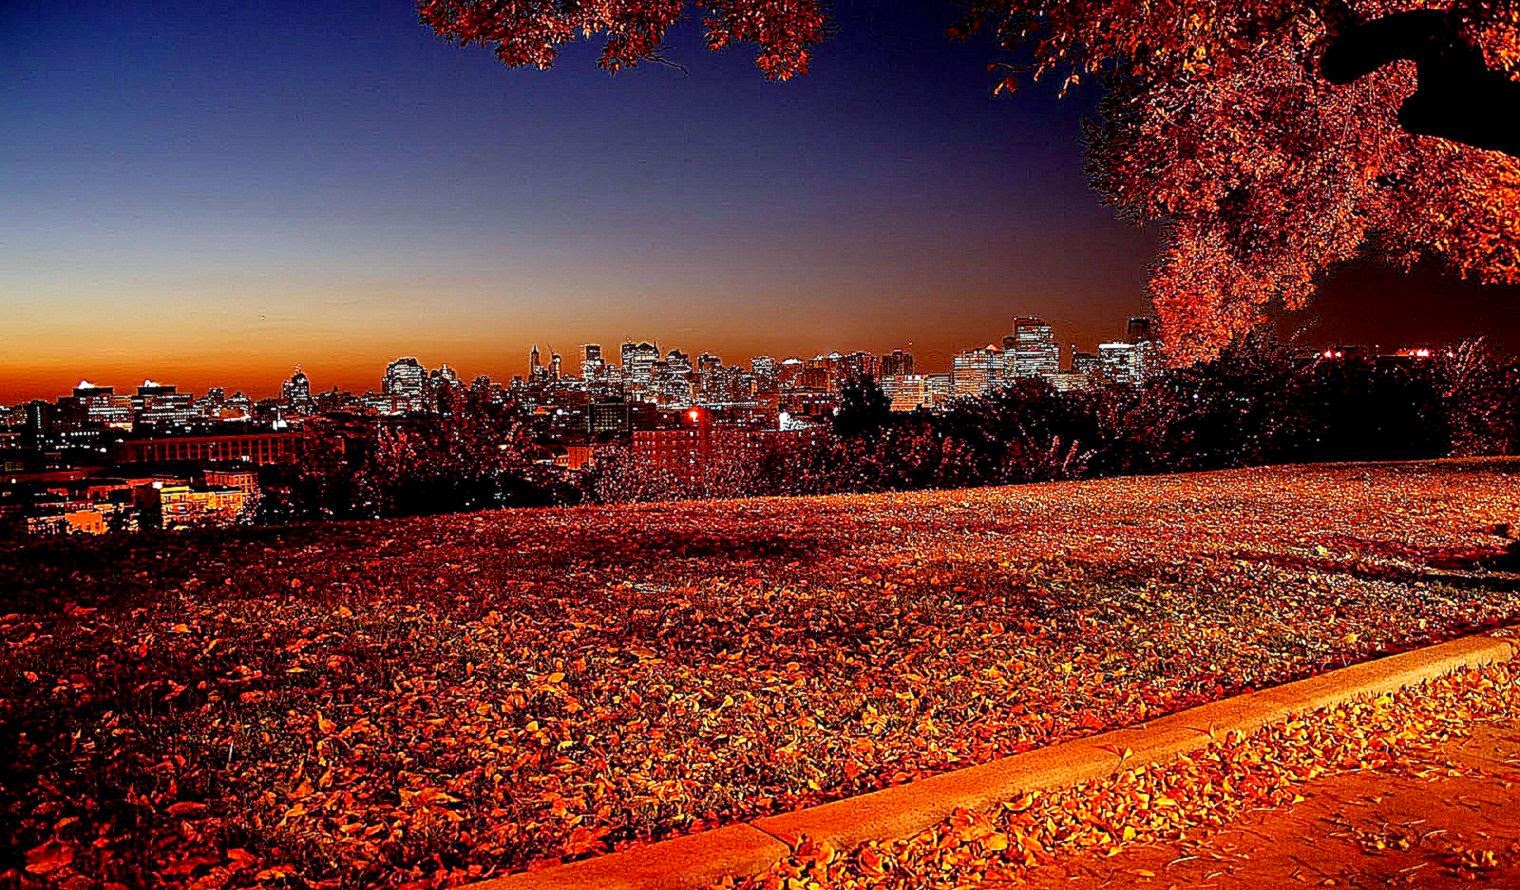 autumn wallpapers hd best - photo #25